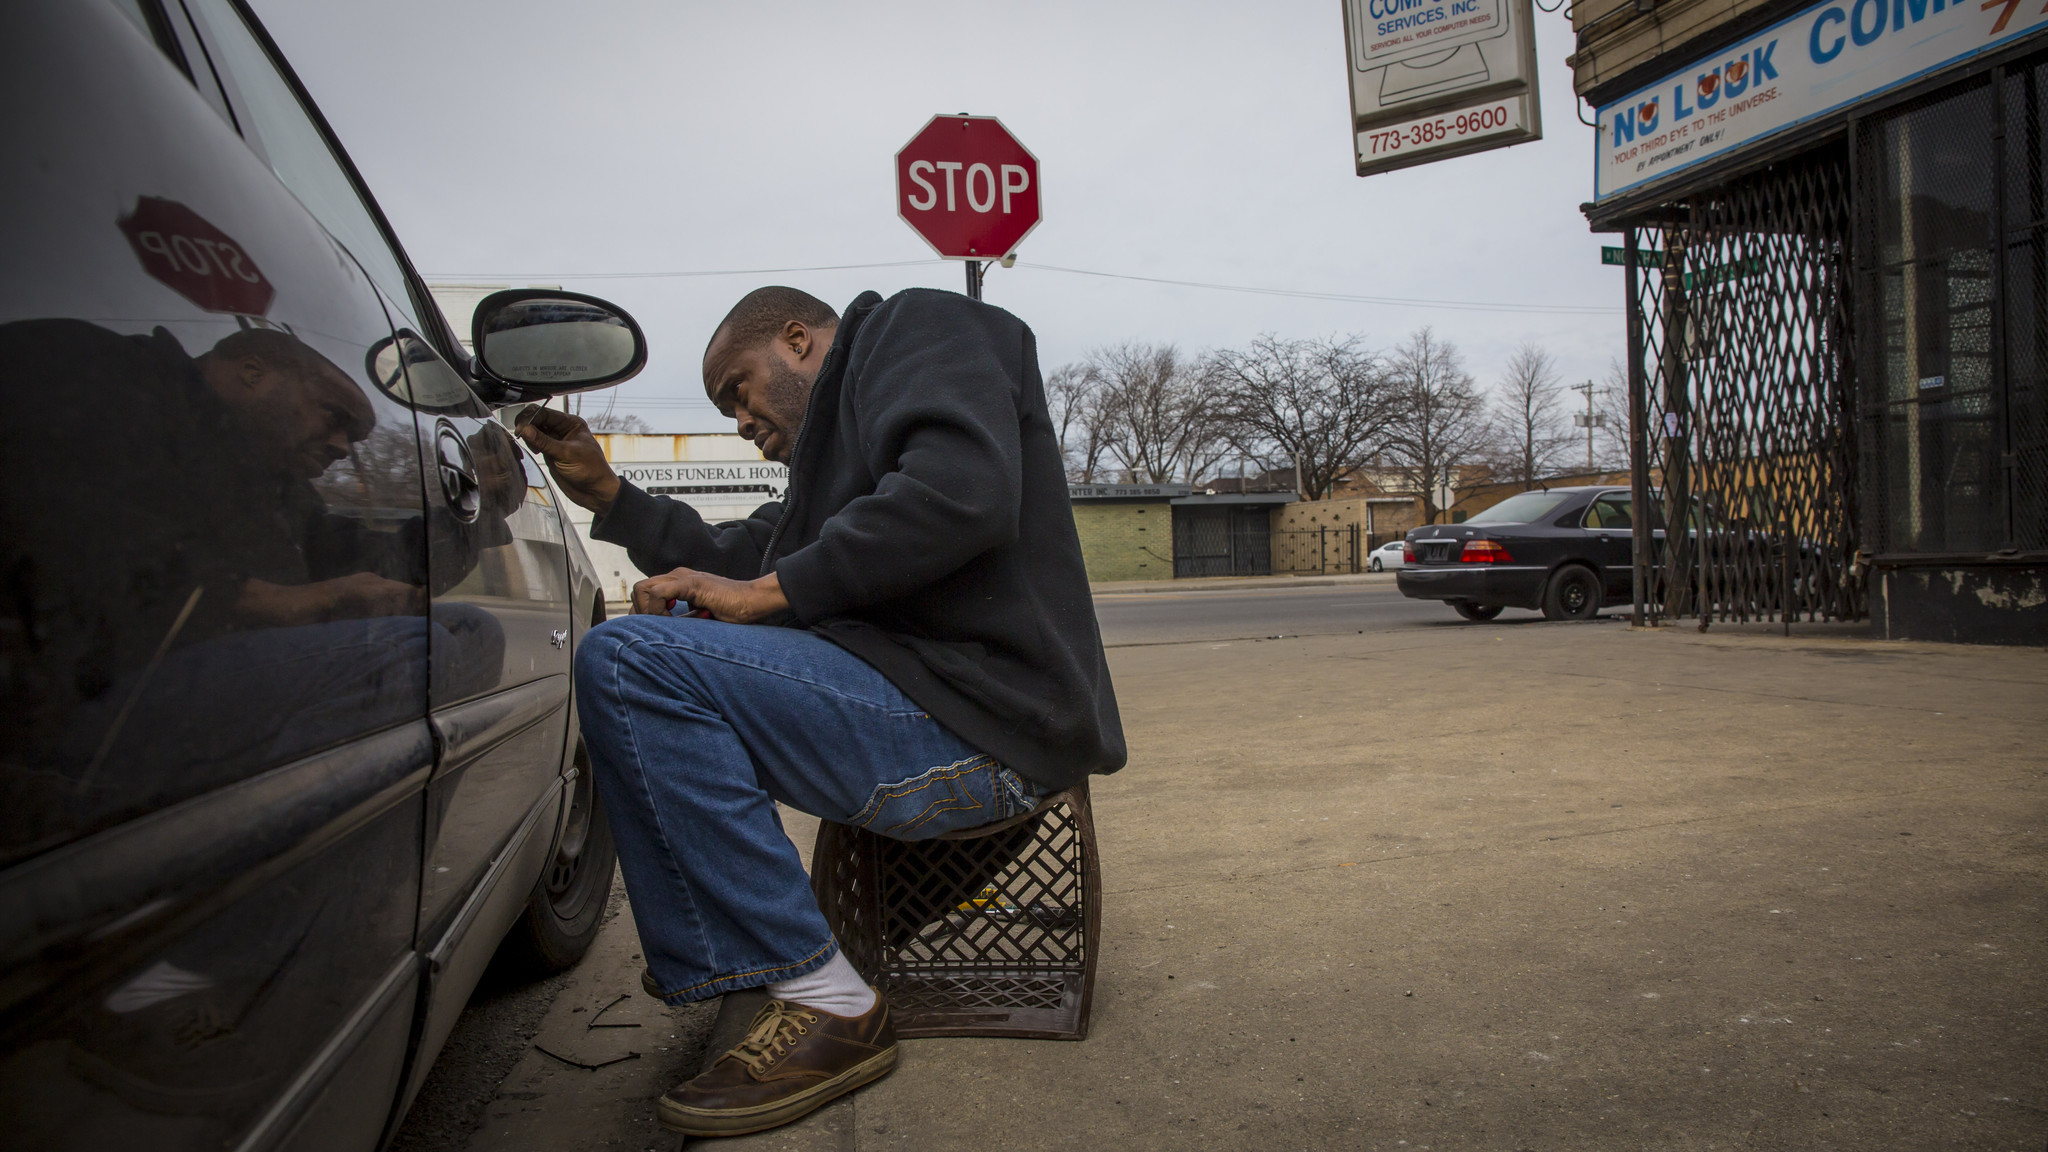 The next day living around gun violence chicago tribune jim wilson sat on a plastic crate monday in front of his uncles nu luuk computer store carefully reattaching the passenger side mirror on his buick regal rubansaba